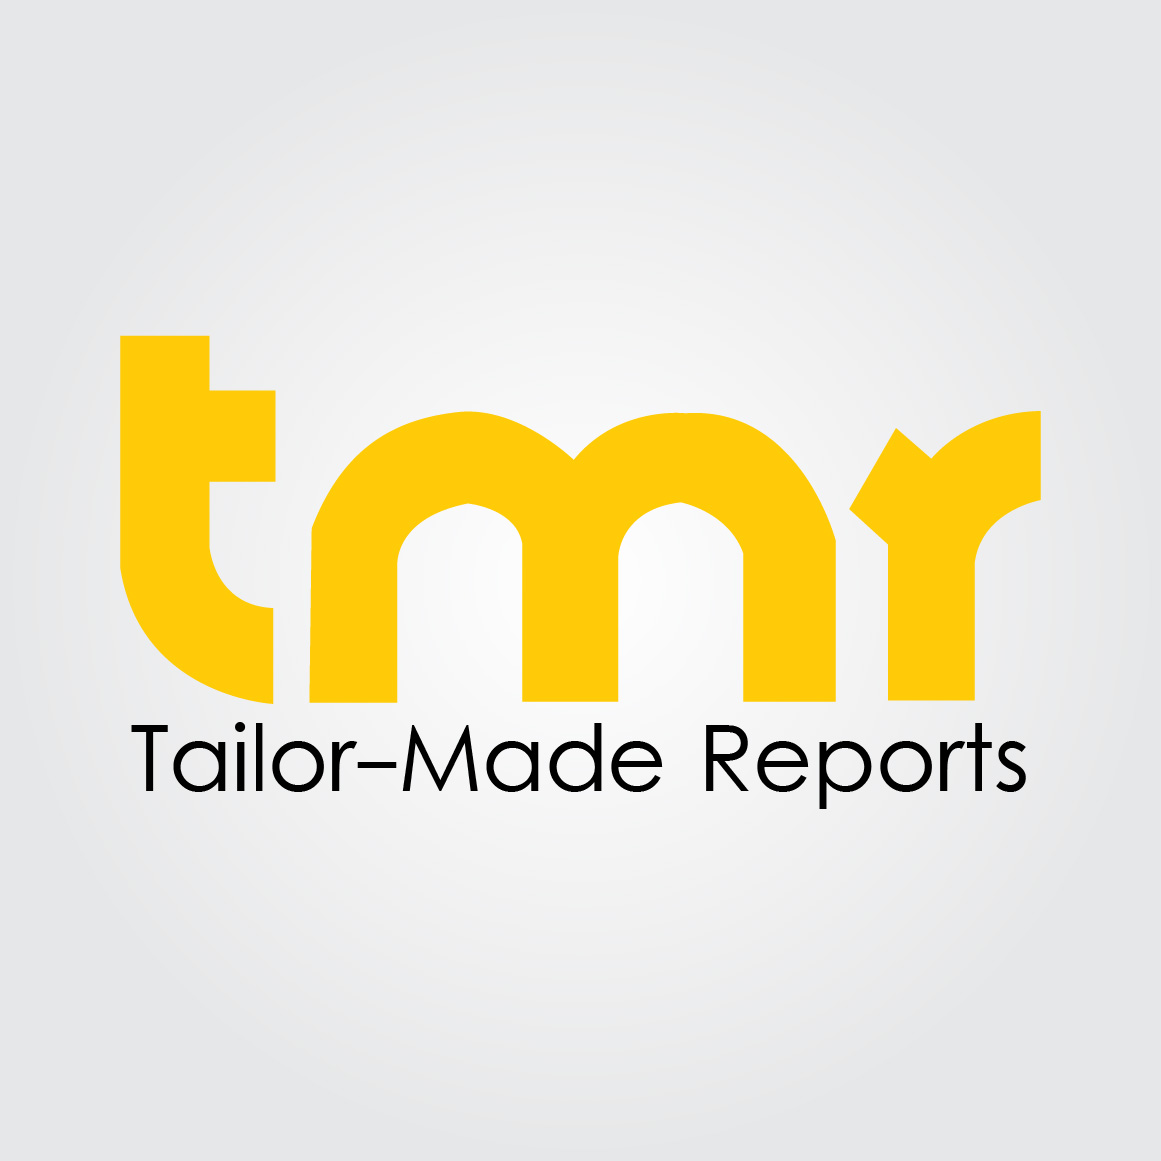 Compressor Control System Market is forecasted to grow tremendously in the next ten years | TMR Research Study